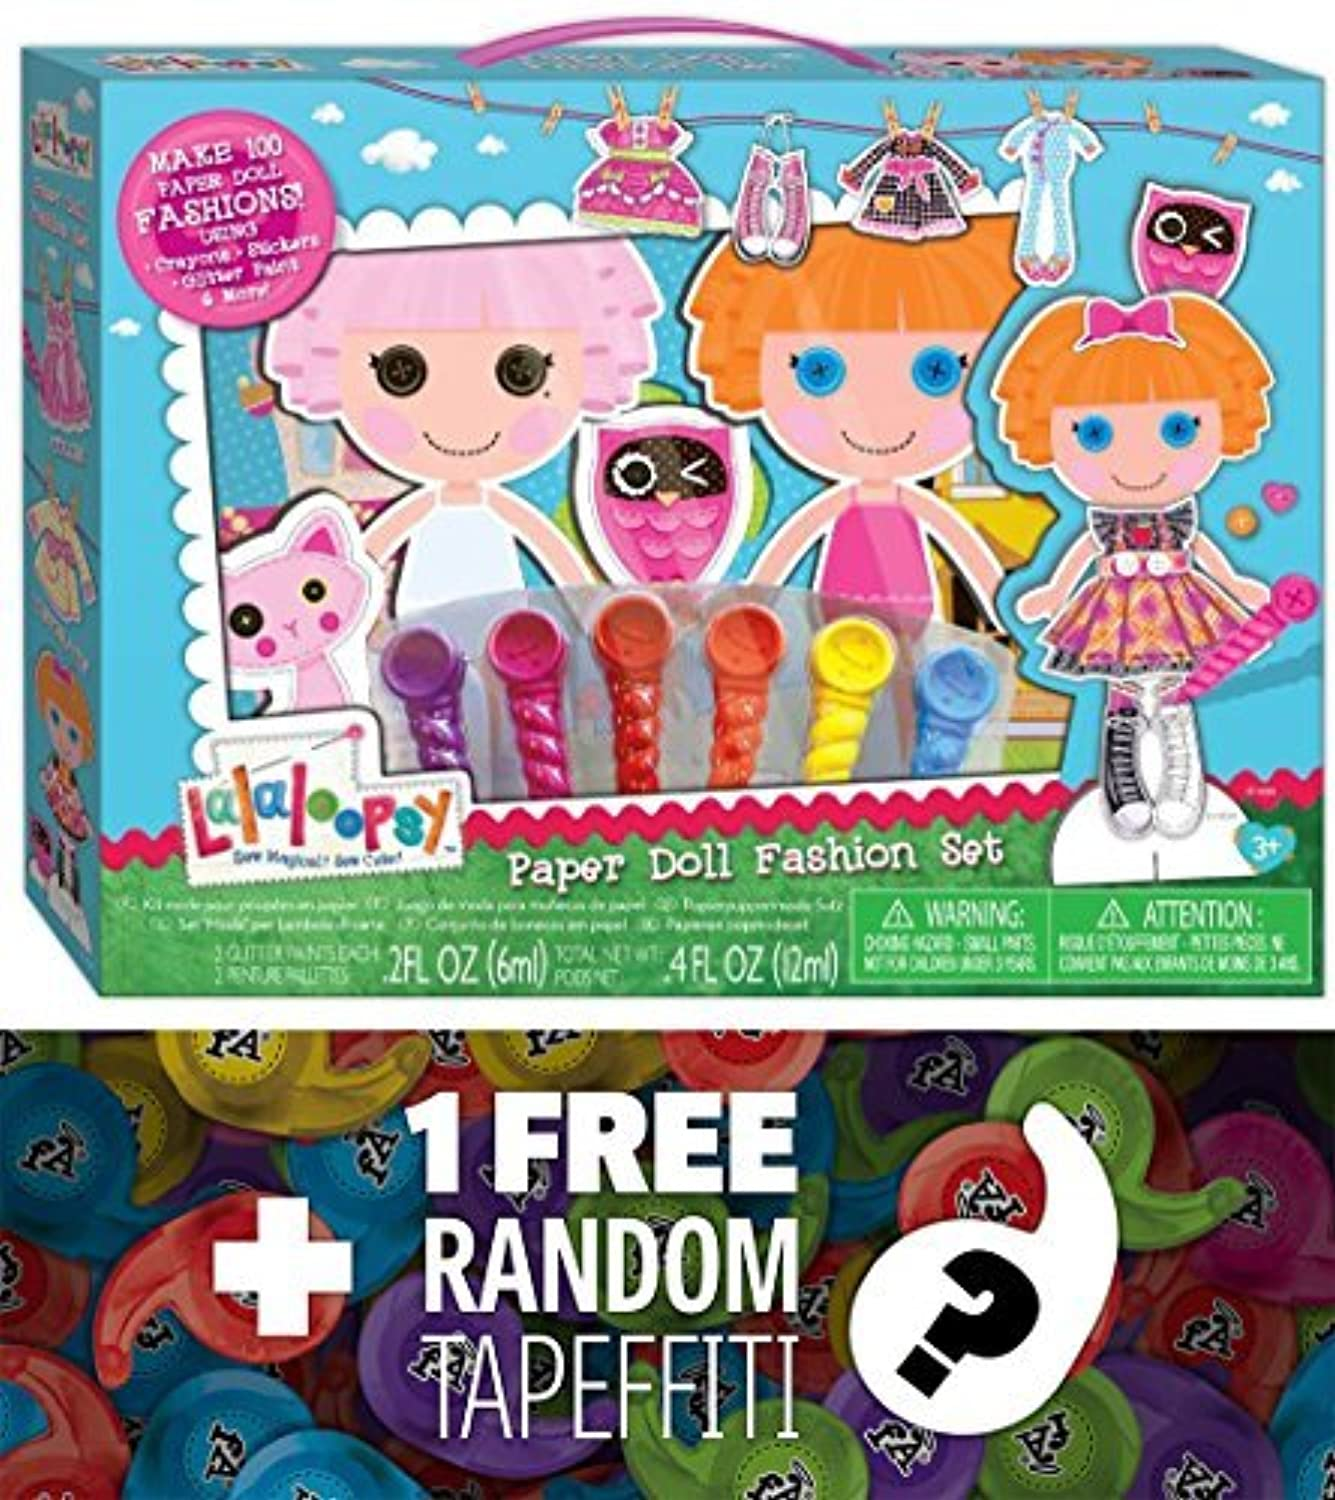 Lalaloopsy Paper Doll Fashion Set + 1 FREE Mini-Tapeffiti Bundle [525307] by Lalaloopsy [並行輸入品]